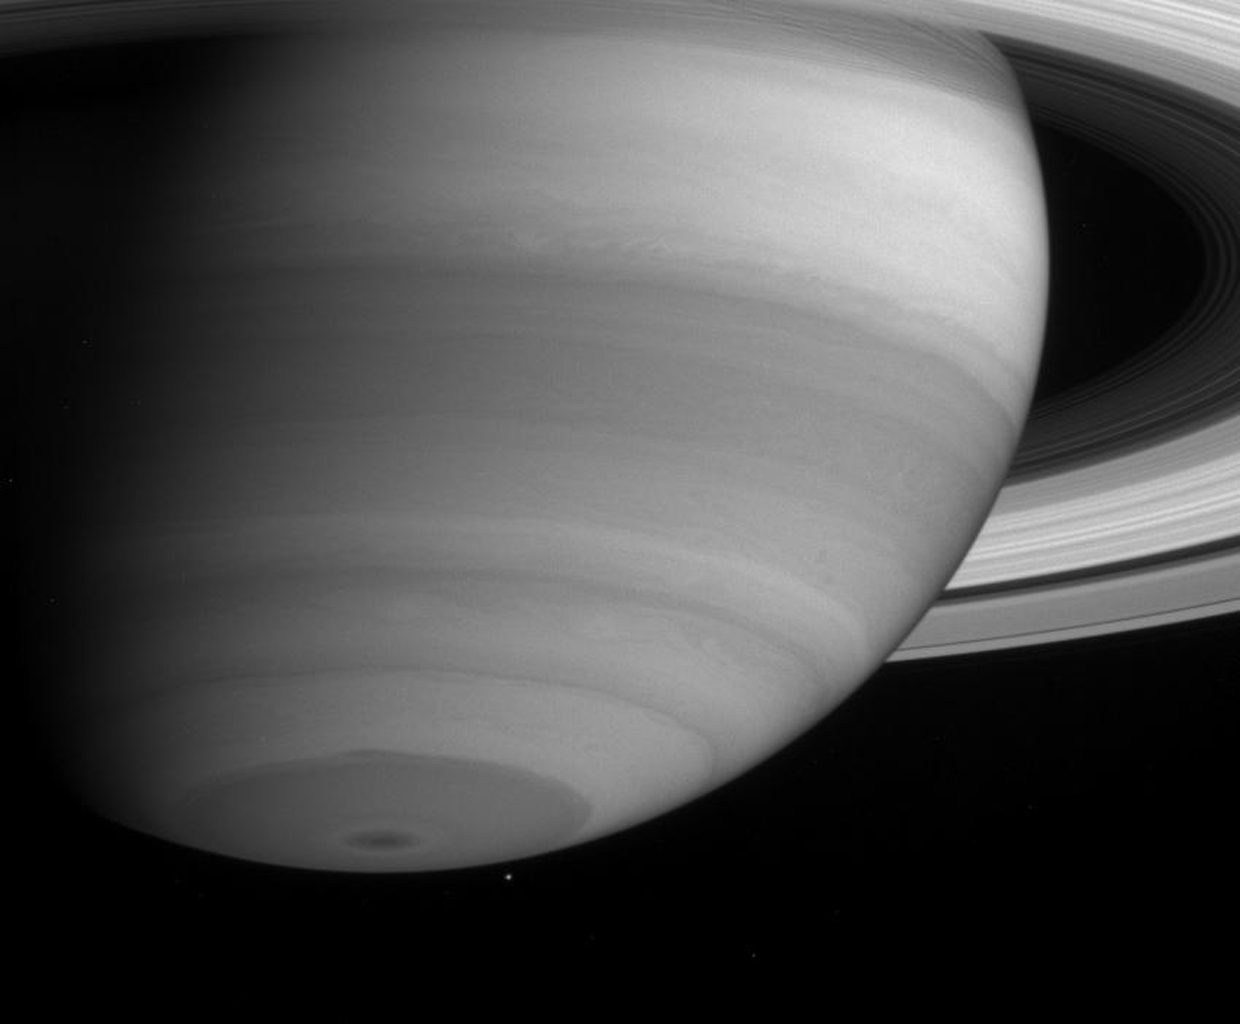 Saturn's captivating cloud bands display a number of interesting features in this narrow angle camera image taken by NASA's Cassini spacecraft on May 20, 2004.